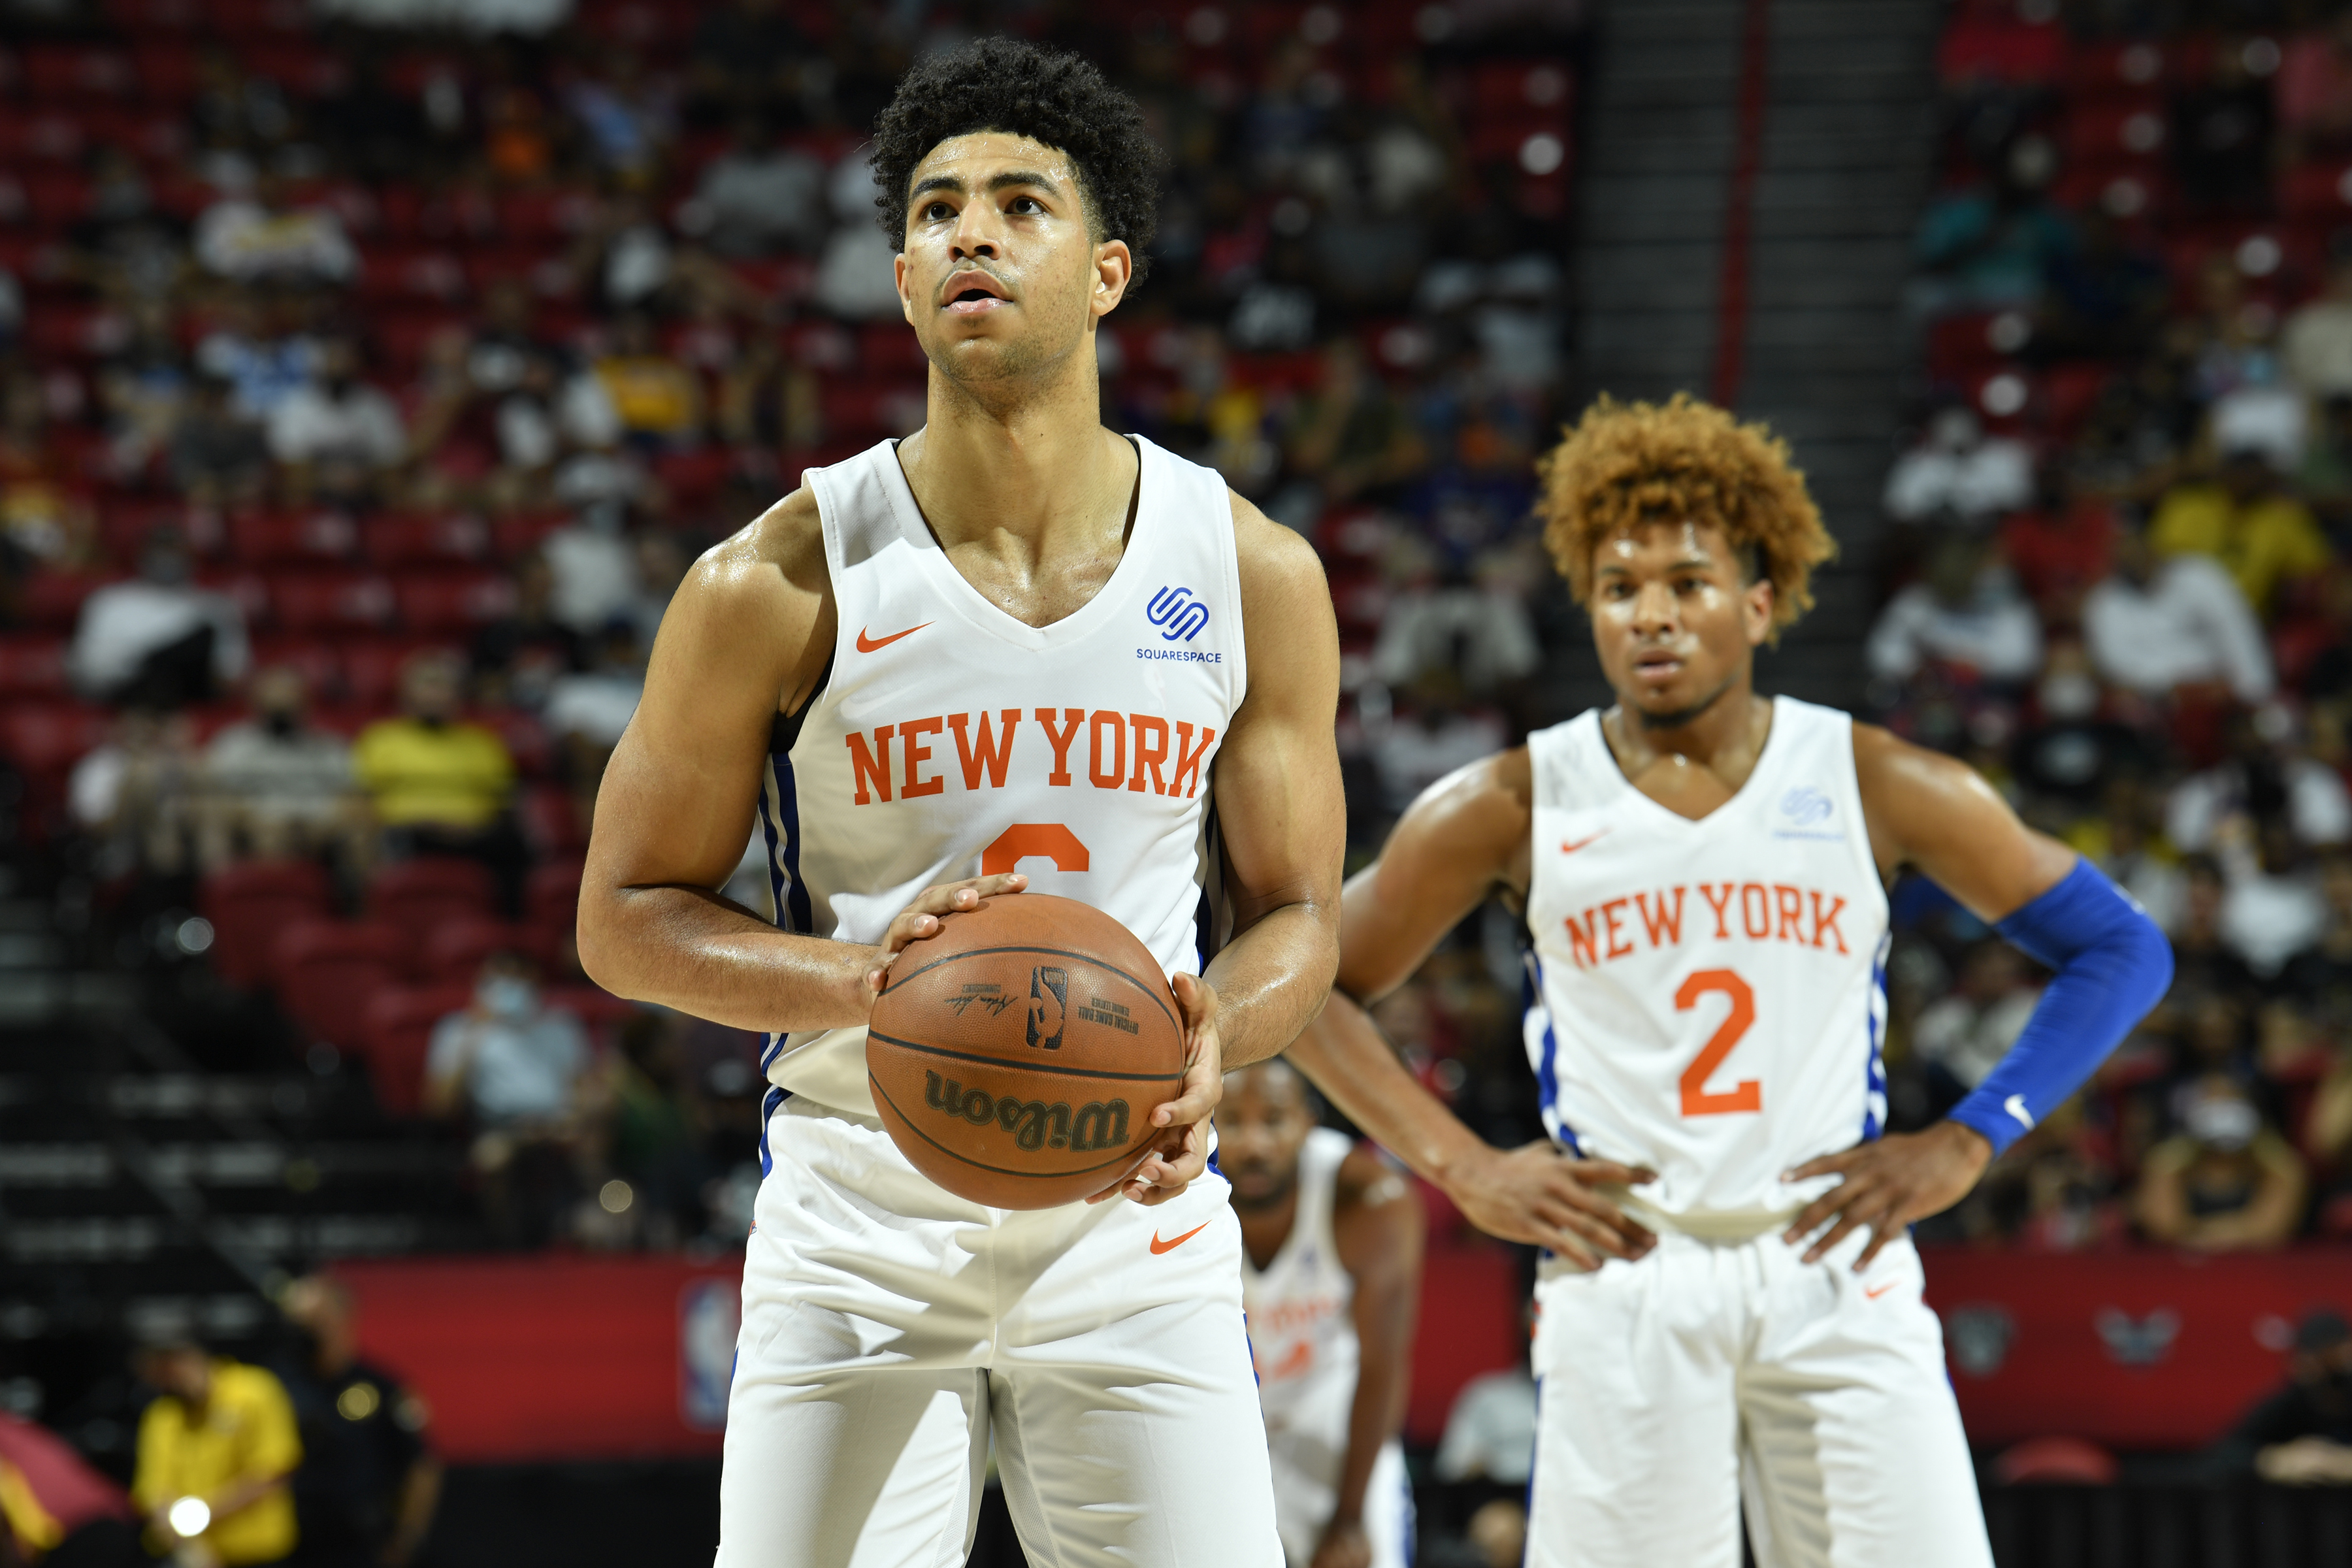 Quentin Grimes #6 of the New York Knicks looks to shoot a free throw against the Cleveland Cavaliers during the 2021 Las Vegas Summer League on August 14, 2021 at the Thomas & Mack Center in Las Vegas, Nevada.